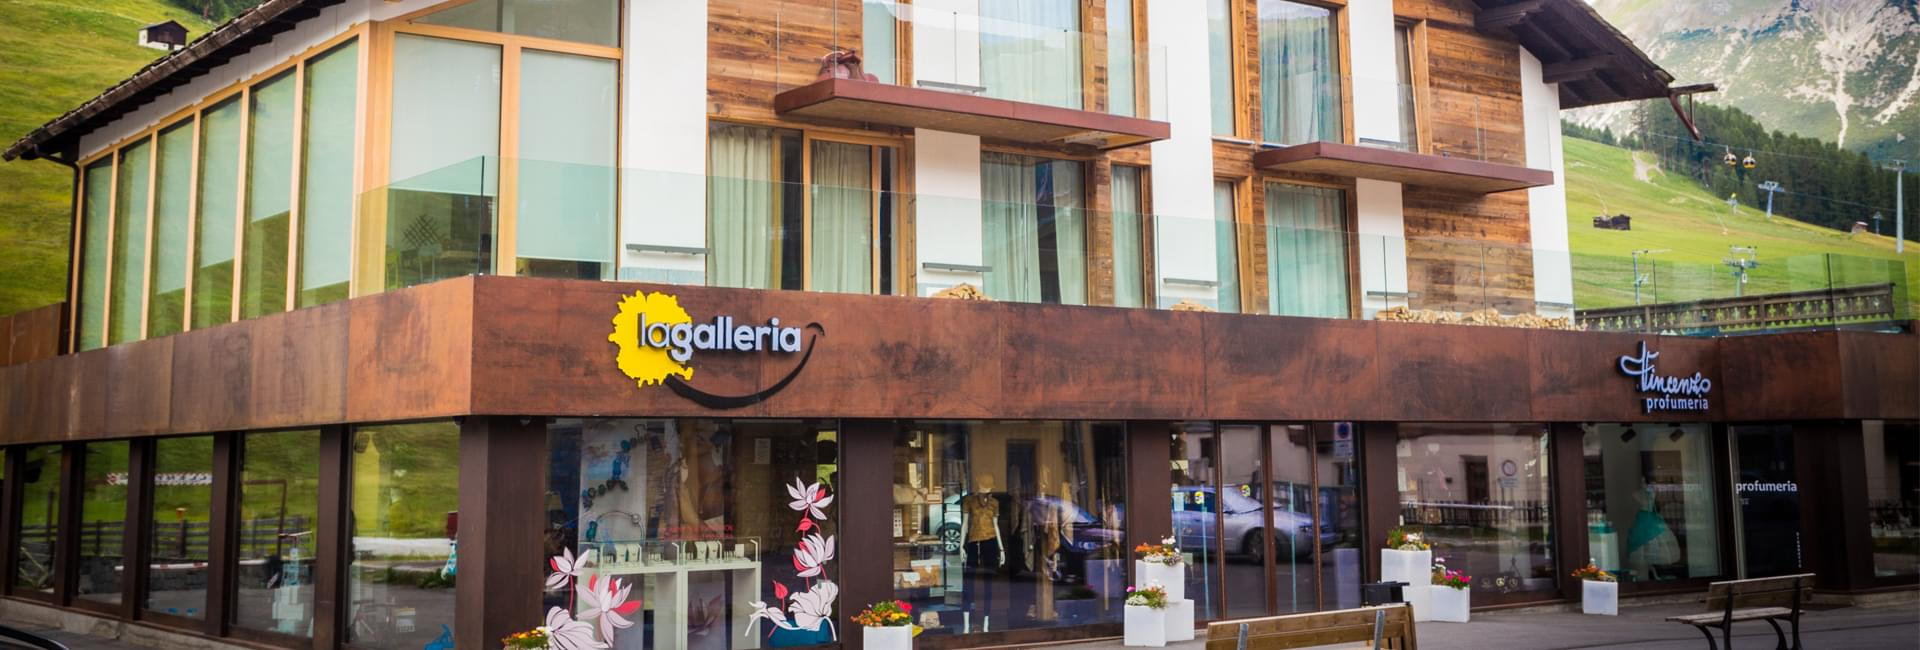 choose our store from among the best in livigno la